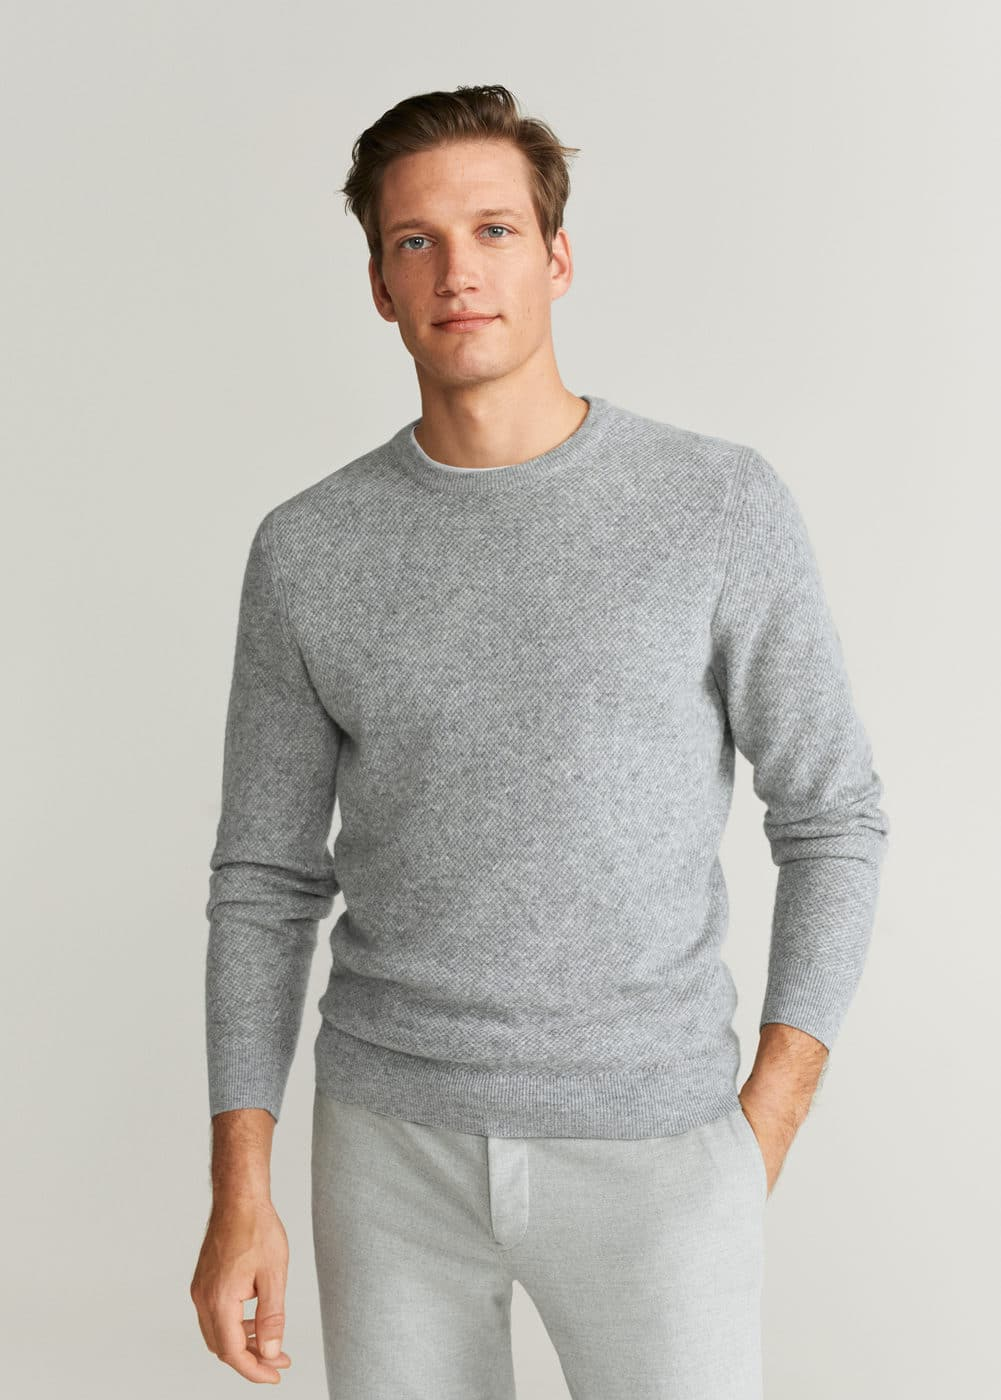 Structured Flecked Sweater by Mango